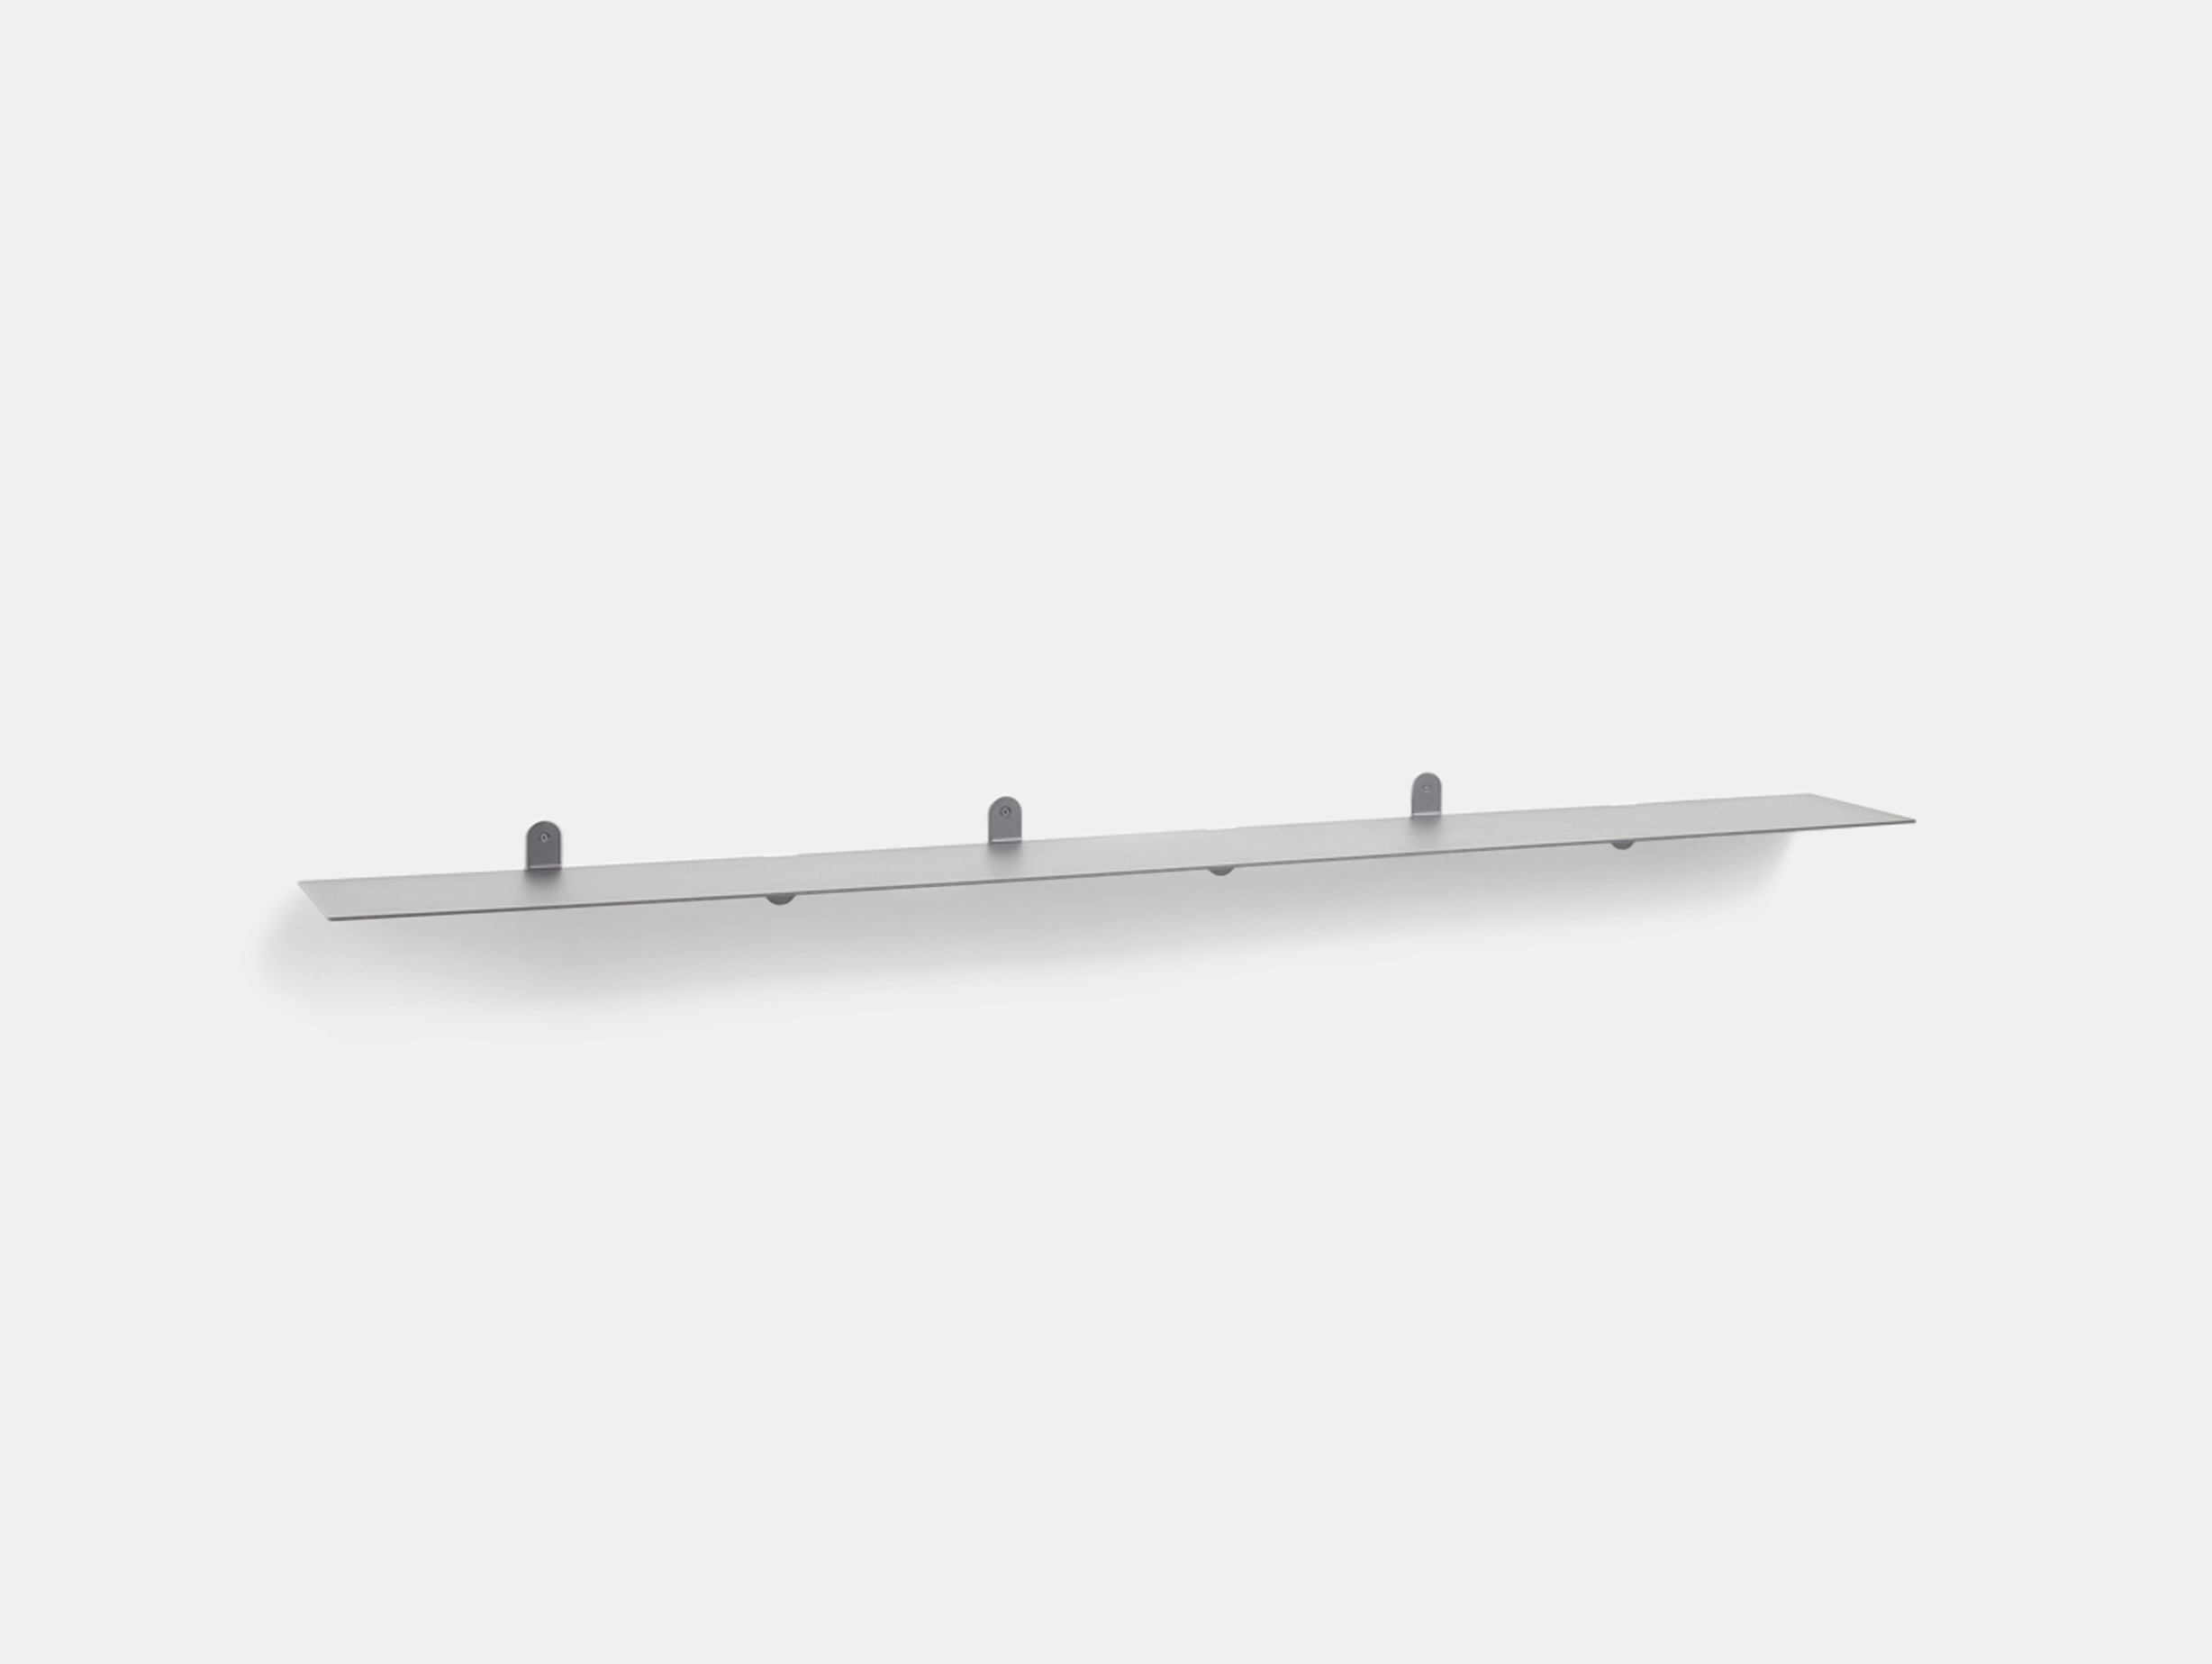 Valerie Objects Shelf No 1 2 3 4 V9017103 Lg Muller Van Severen